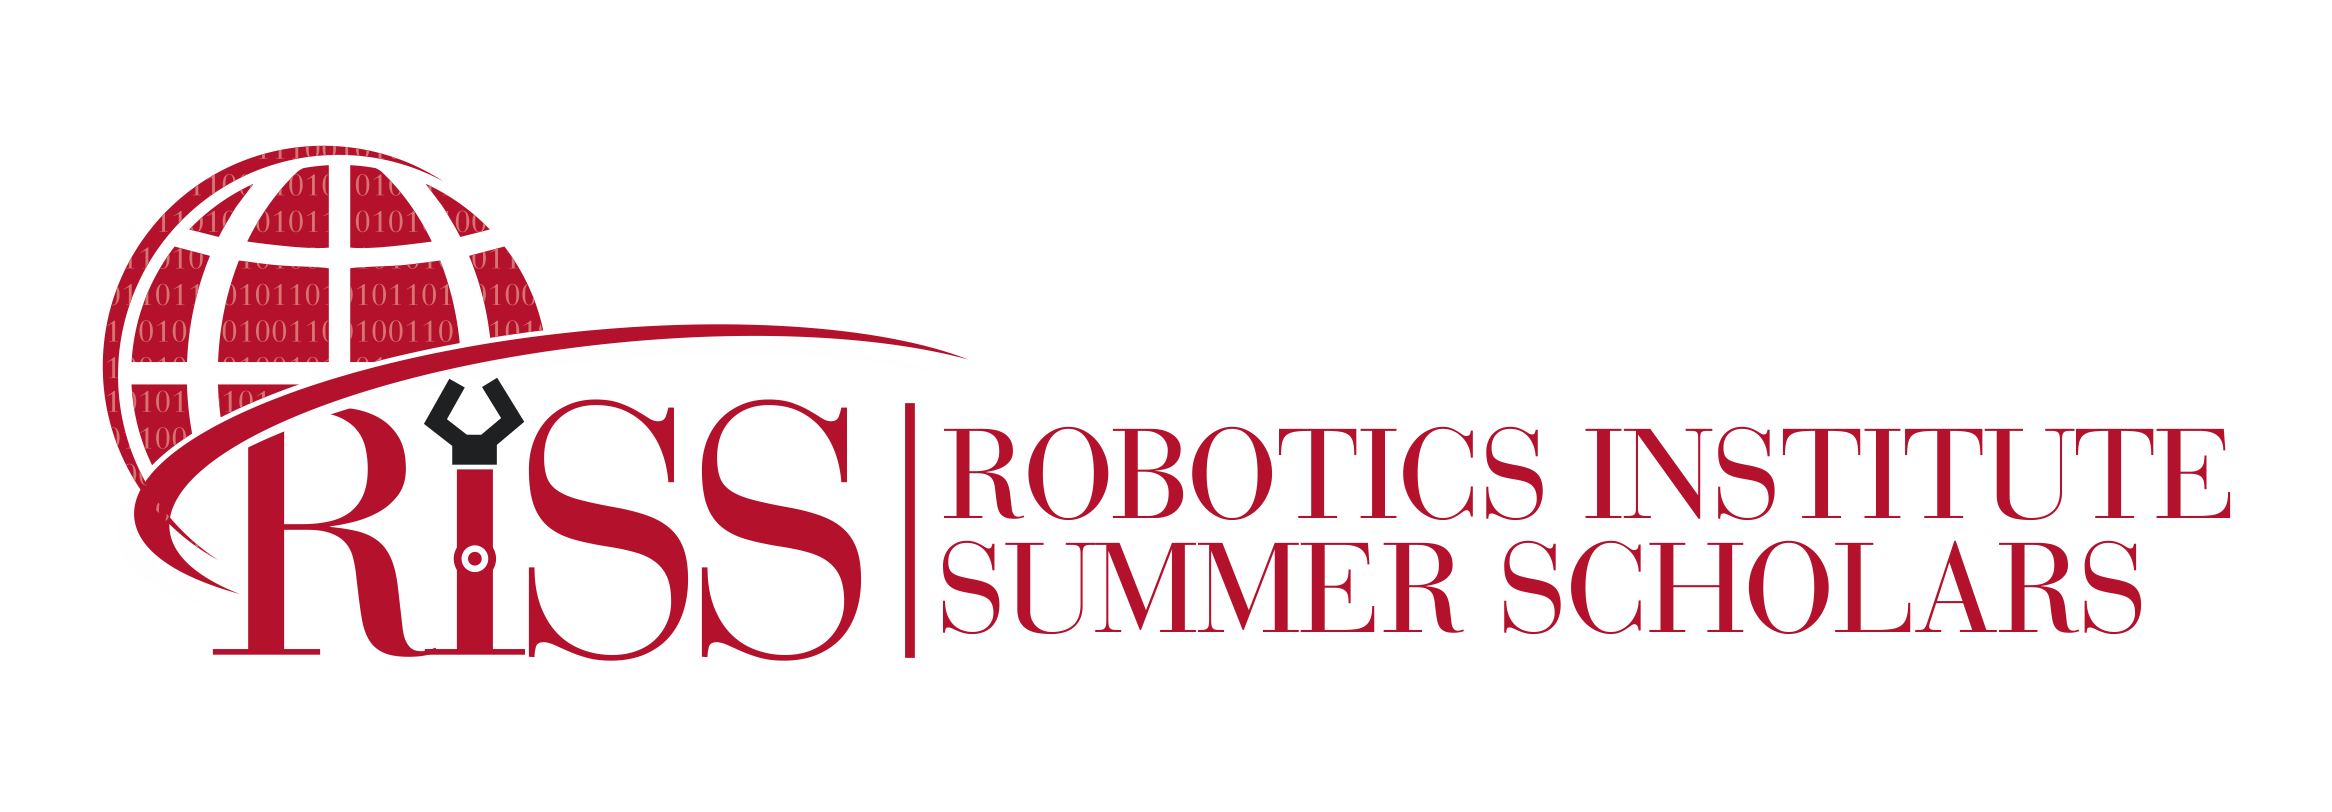 Robotics Institute Summer Scholars (RISS)